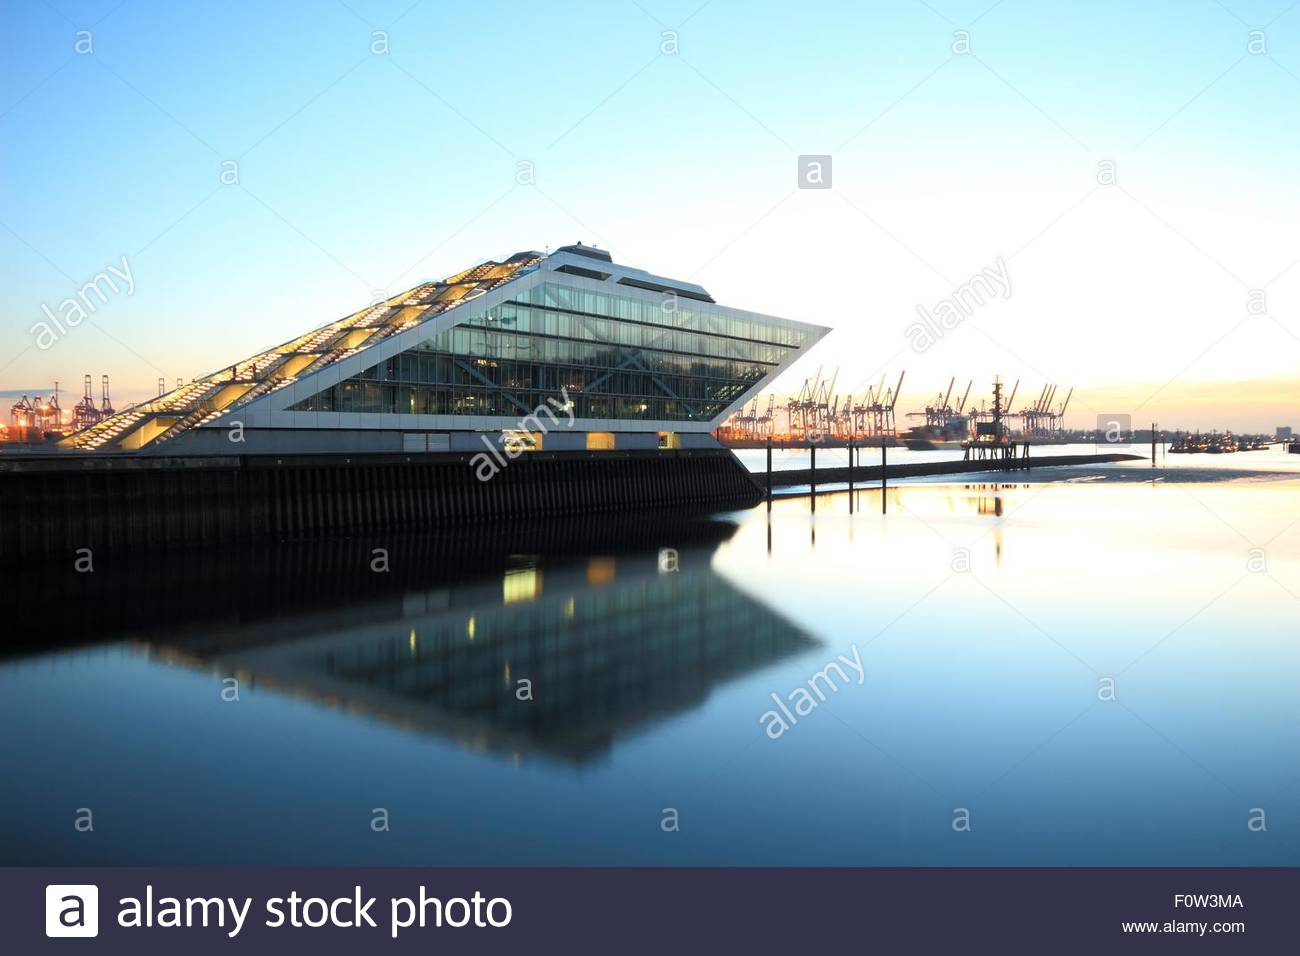 View of dockland office building on river Elbe at dusk, Hamburg, Germany - Stock Image